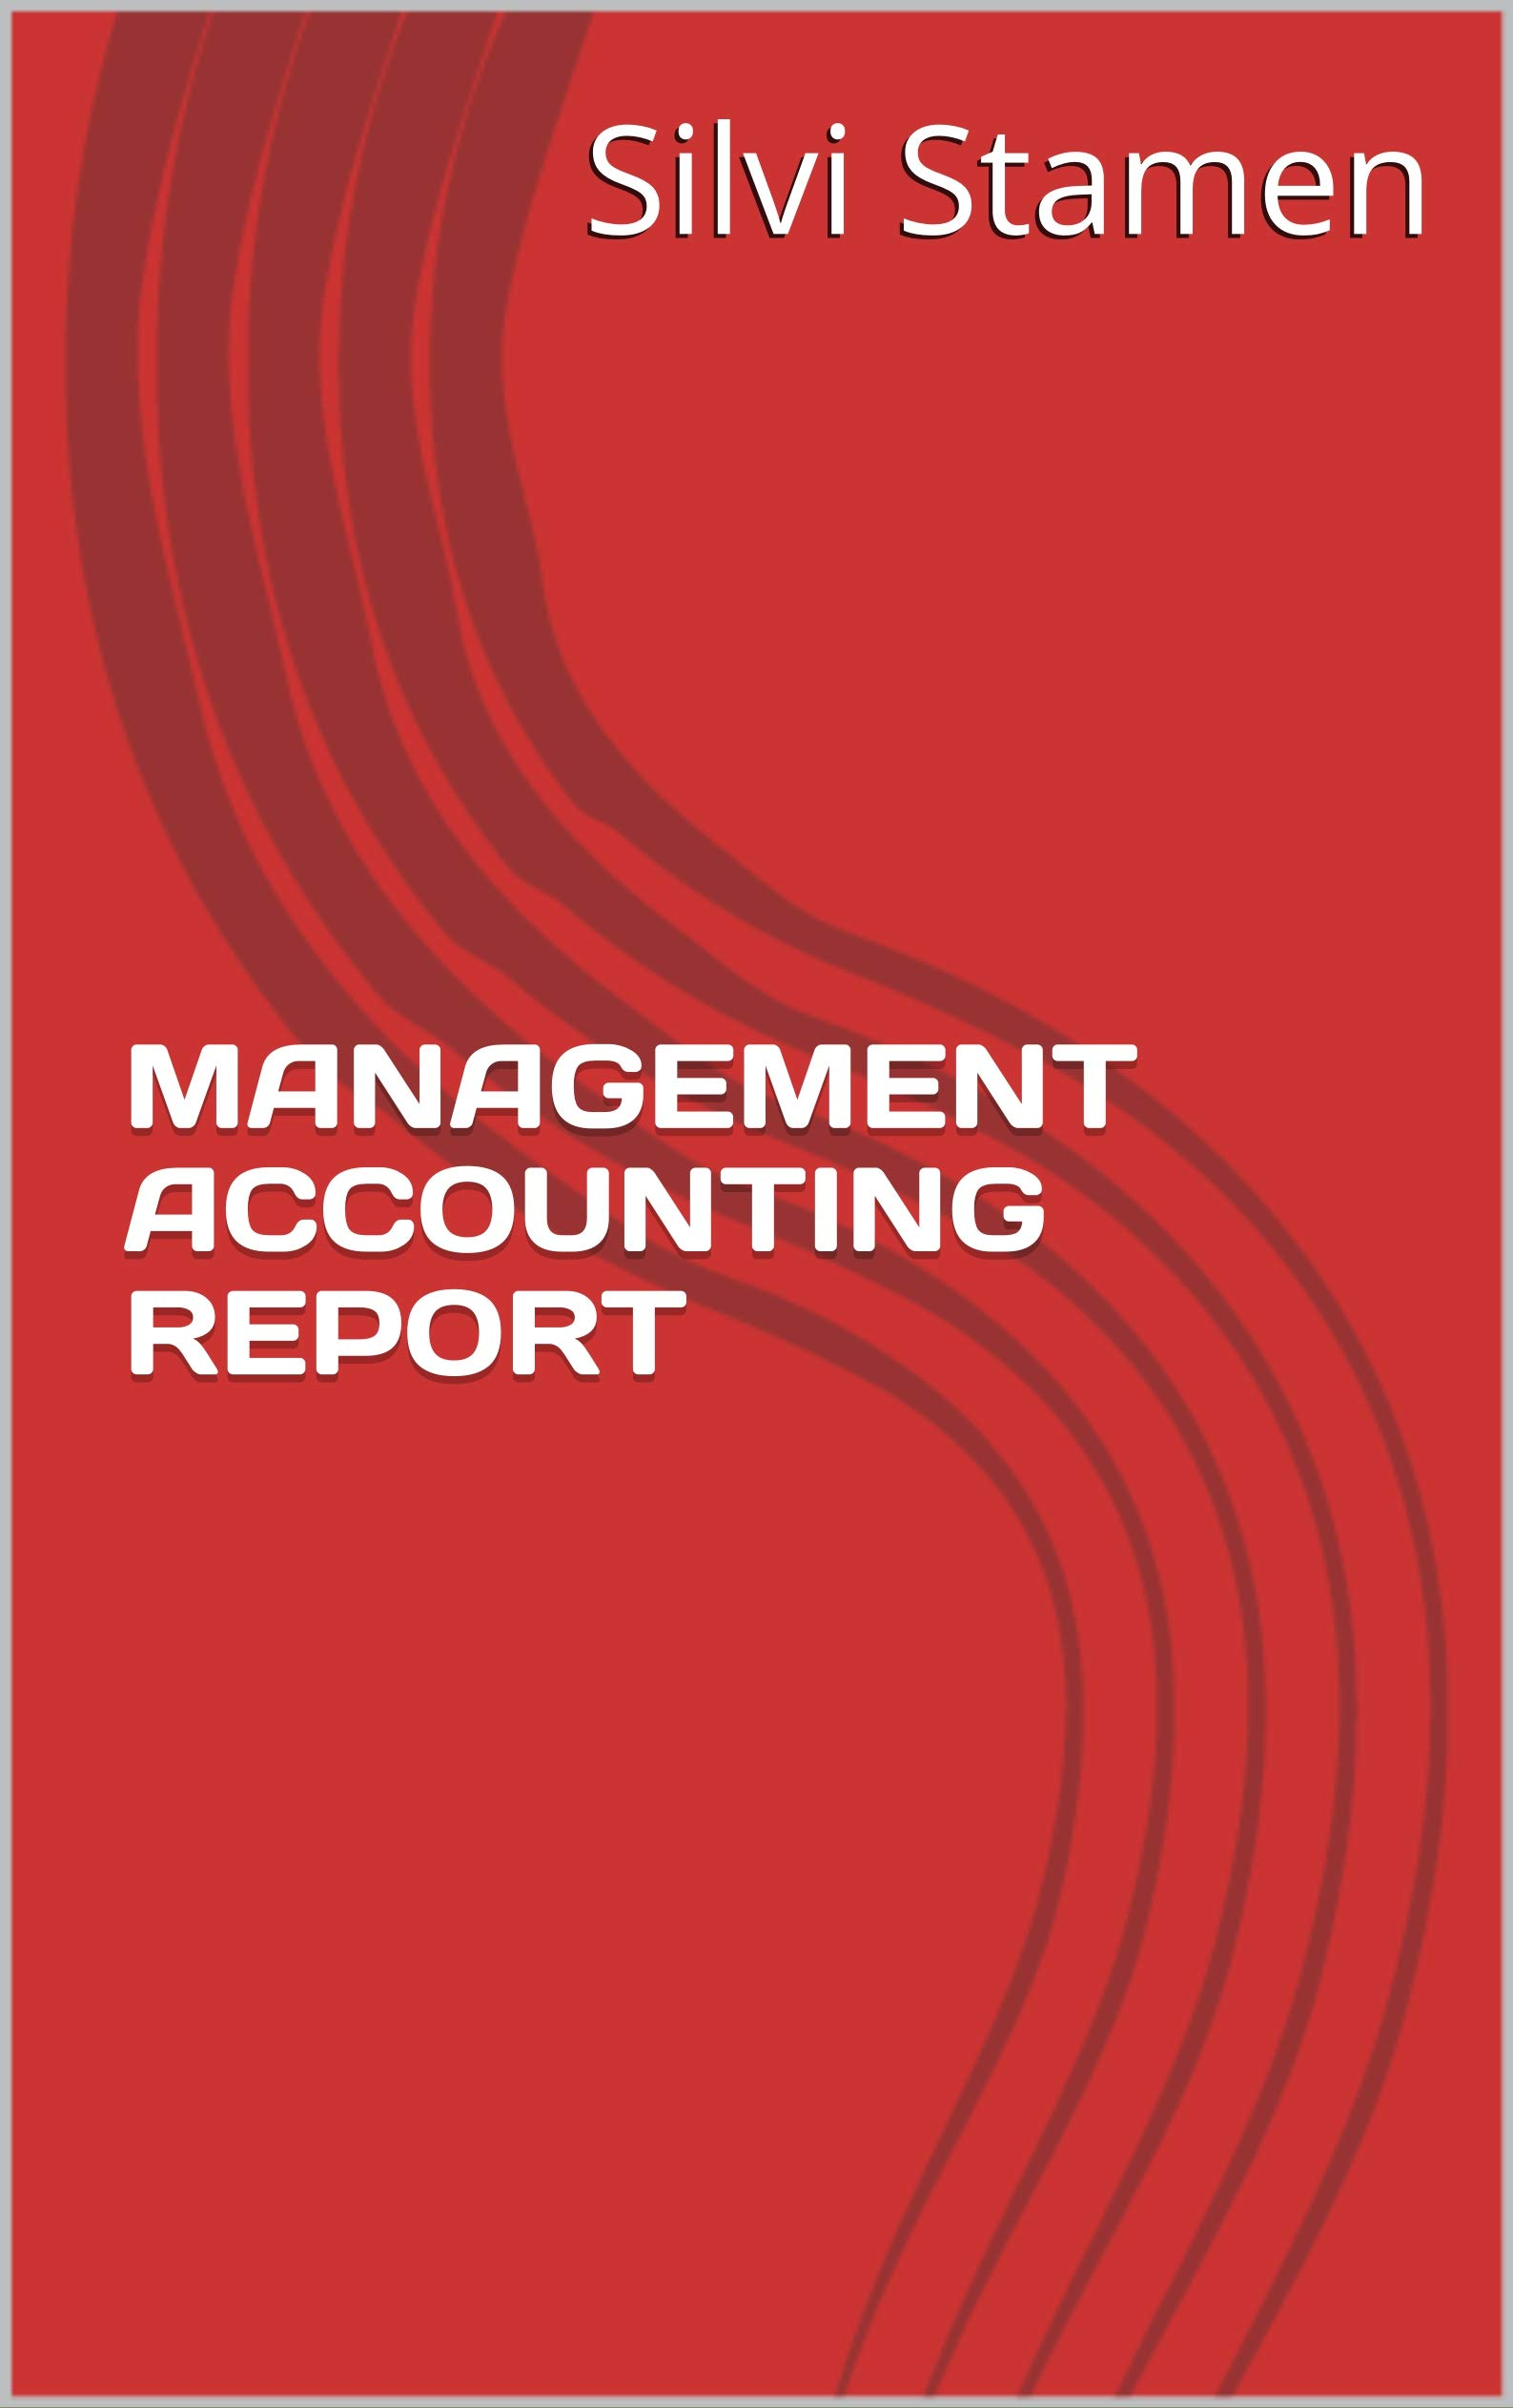 MANAGEMENT ACCOUNTING REPORT